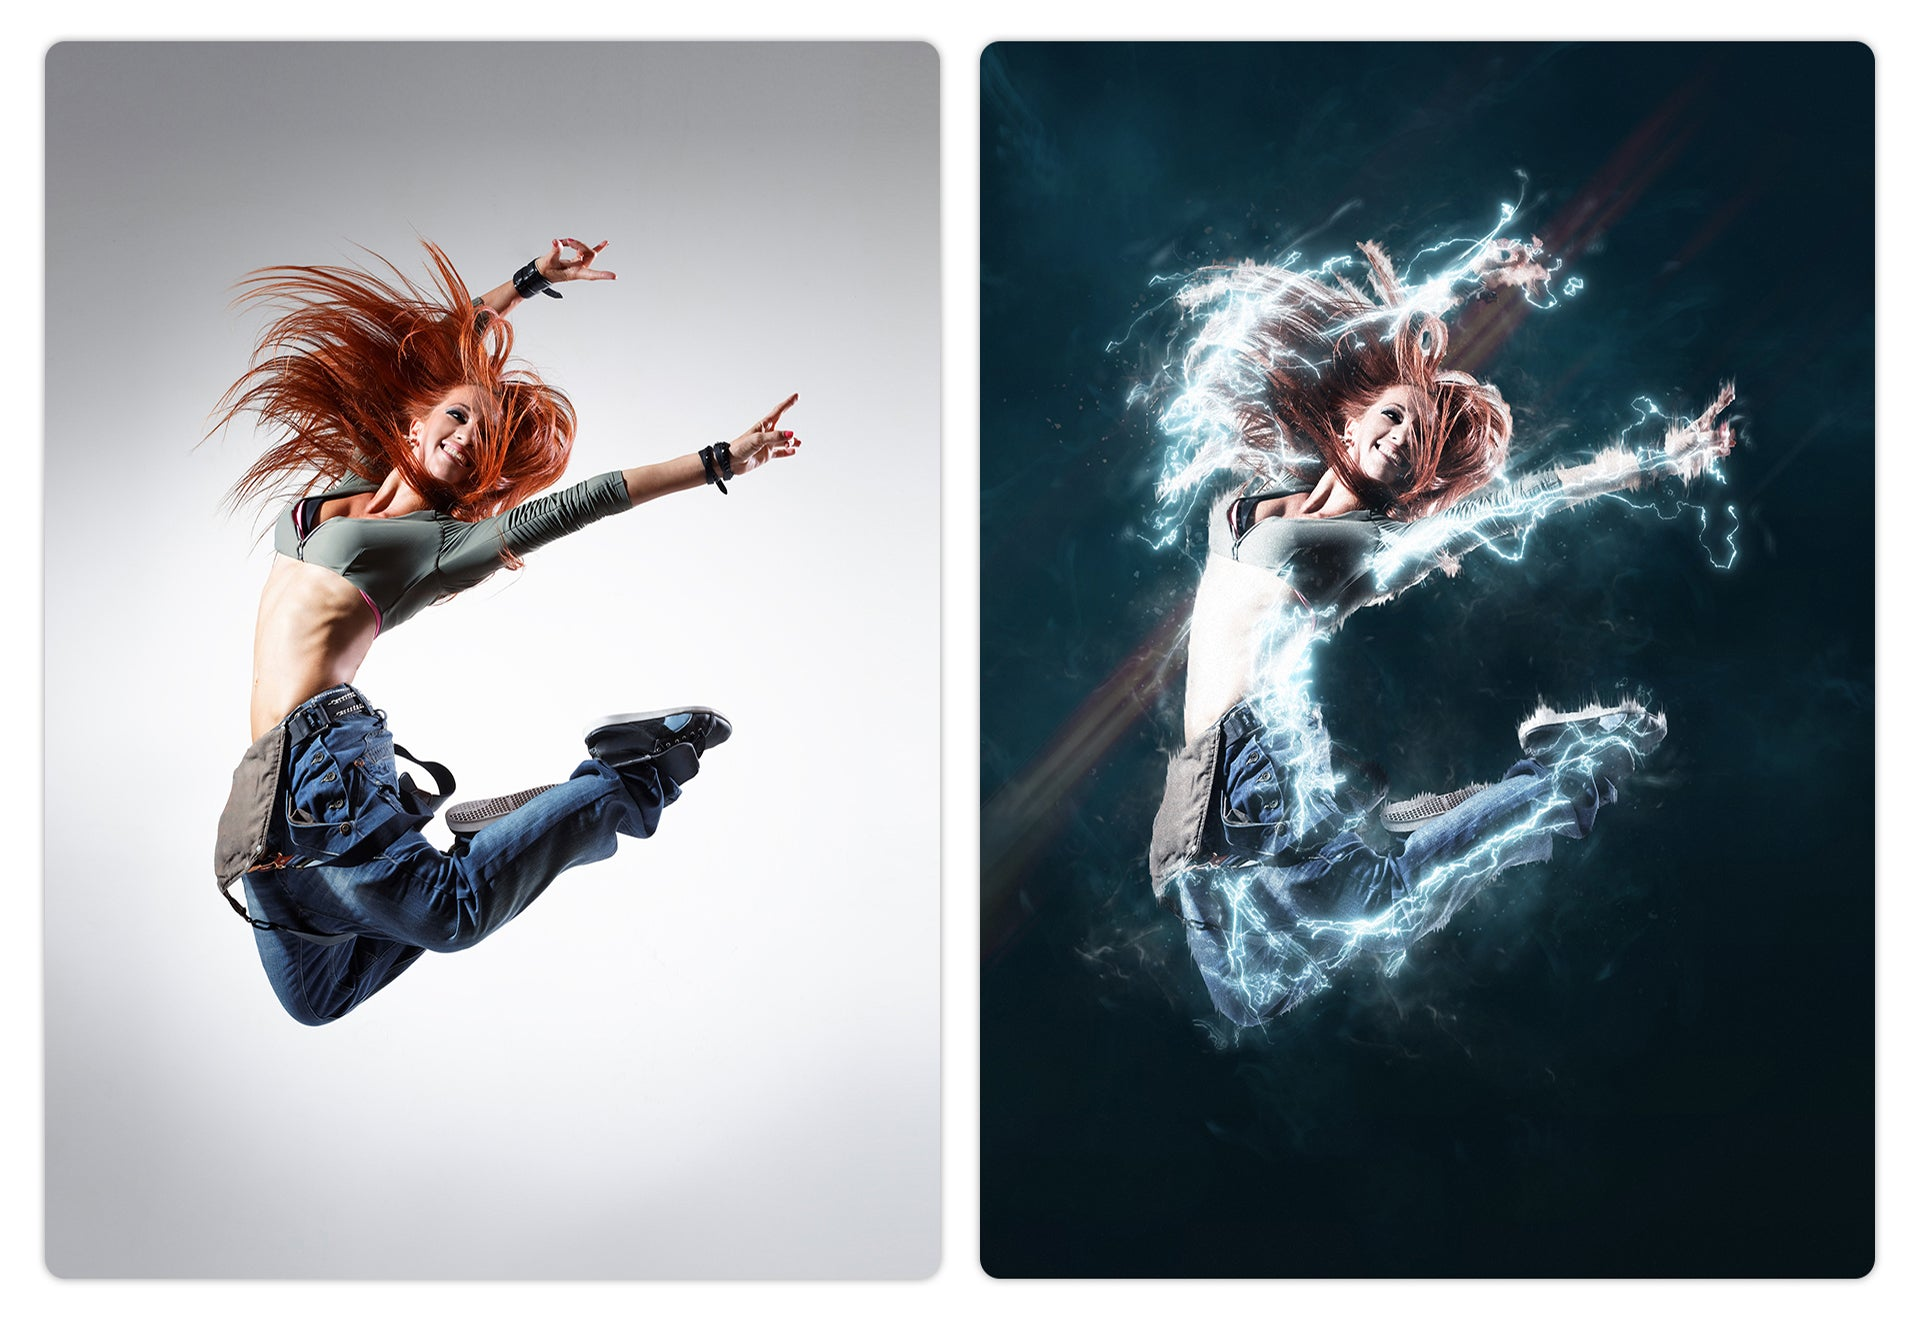 6-In-1 Lighting Explosions Photoshop Actions Bundle-Add-Ons-Artixty